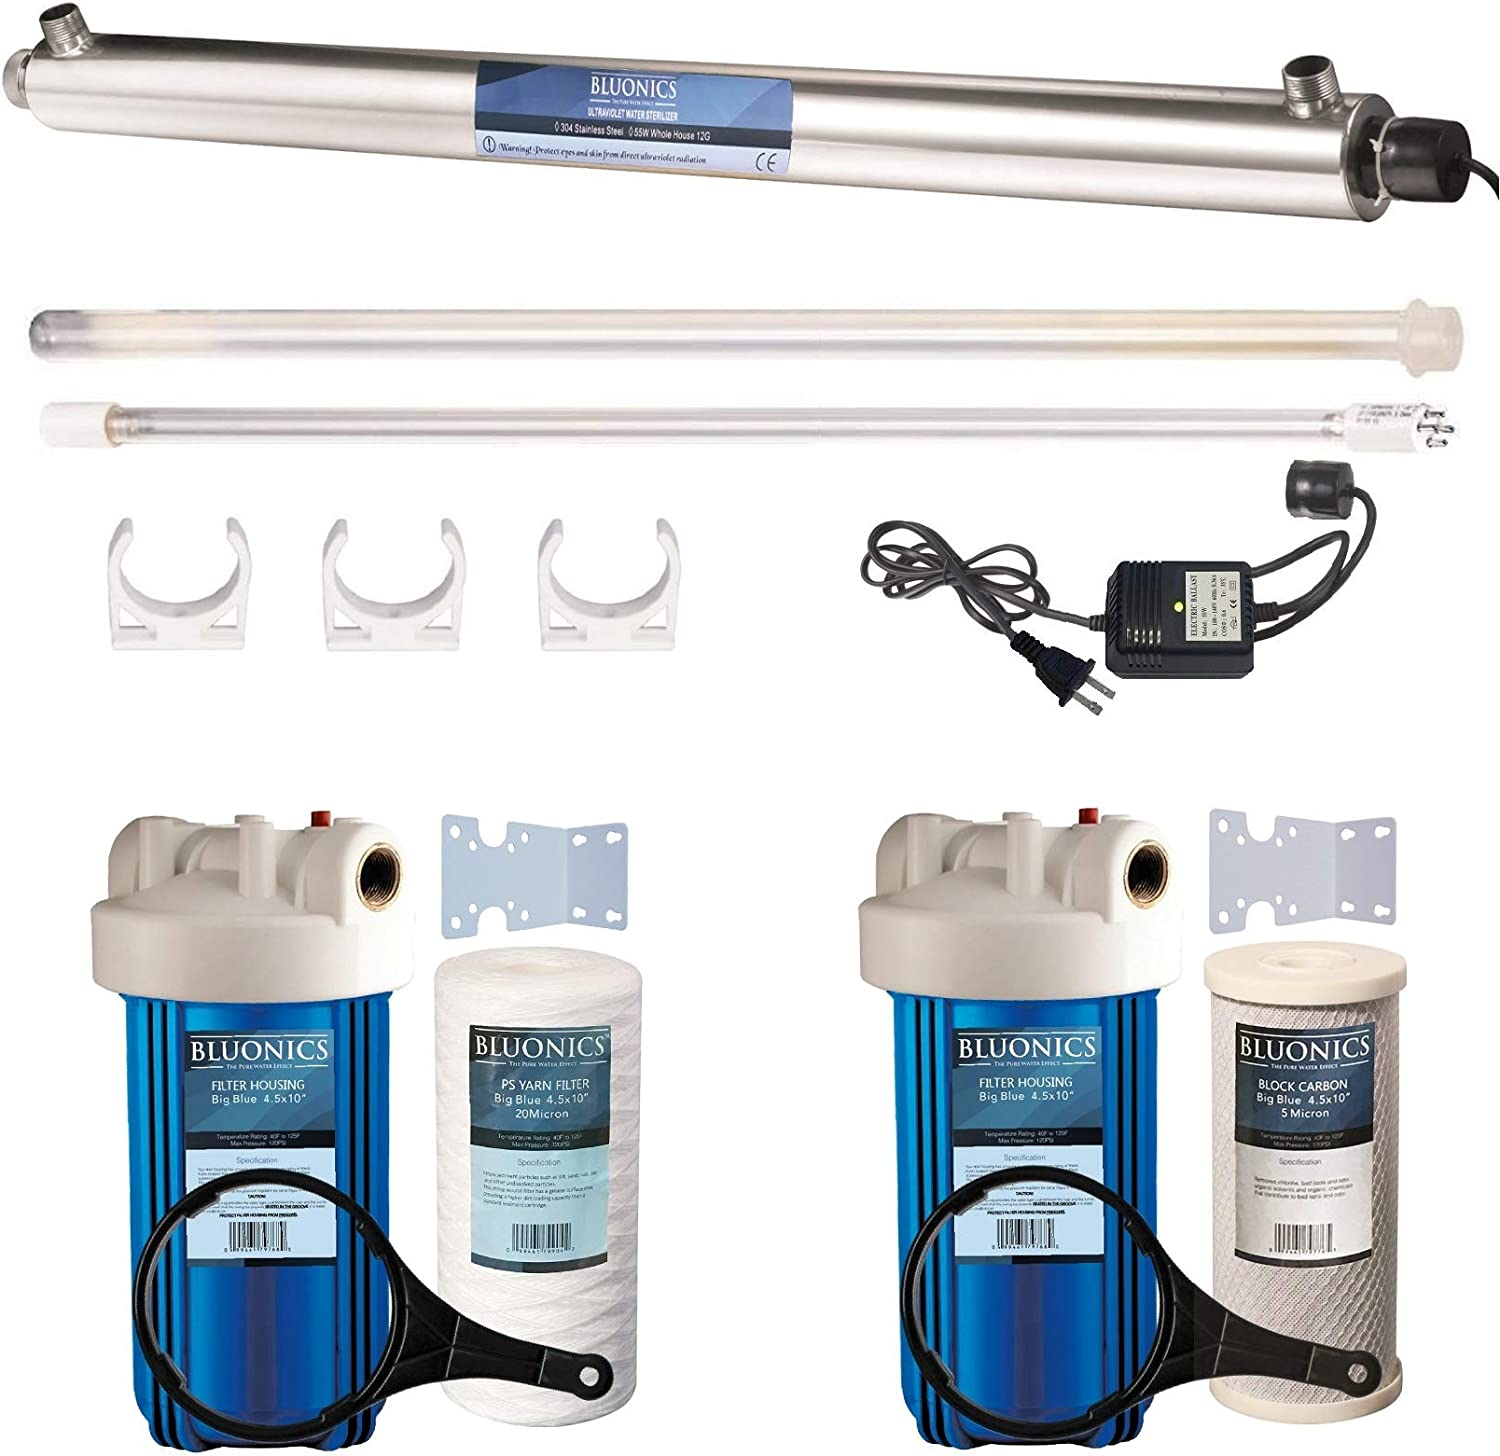 55W UV Ultraviolet Light + Sediment & Carbon Well Water Filter Purifier System > 12 GPM UV Sterilizer with Big Blue Size 4.5